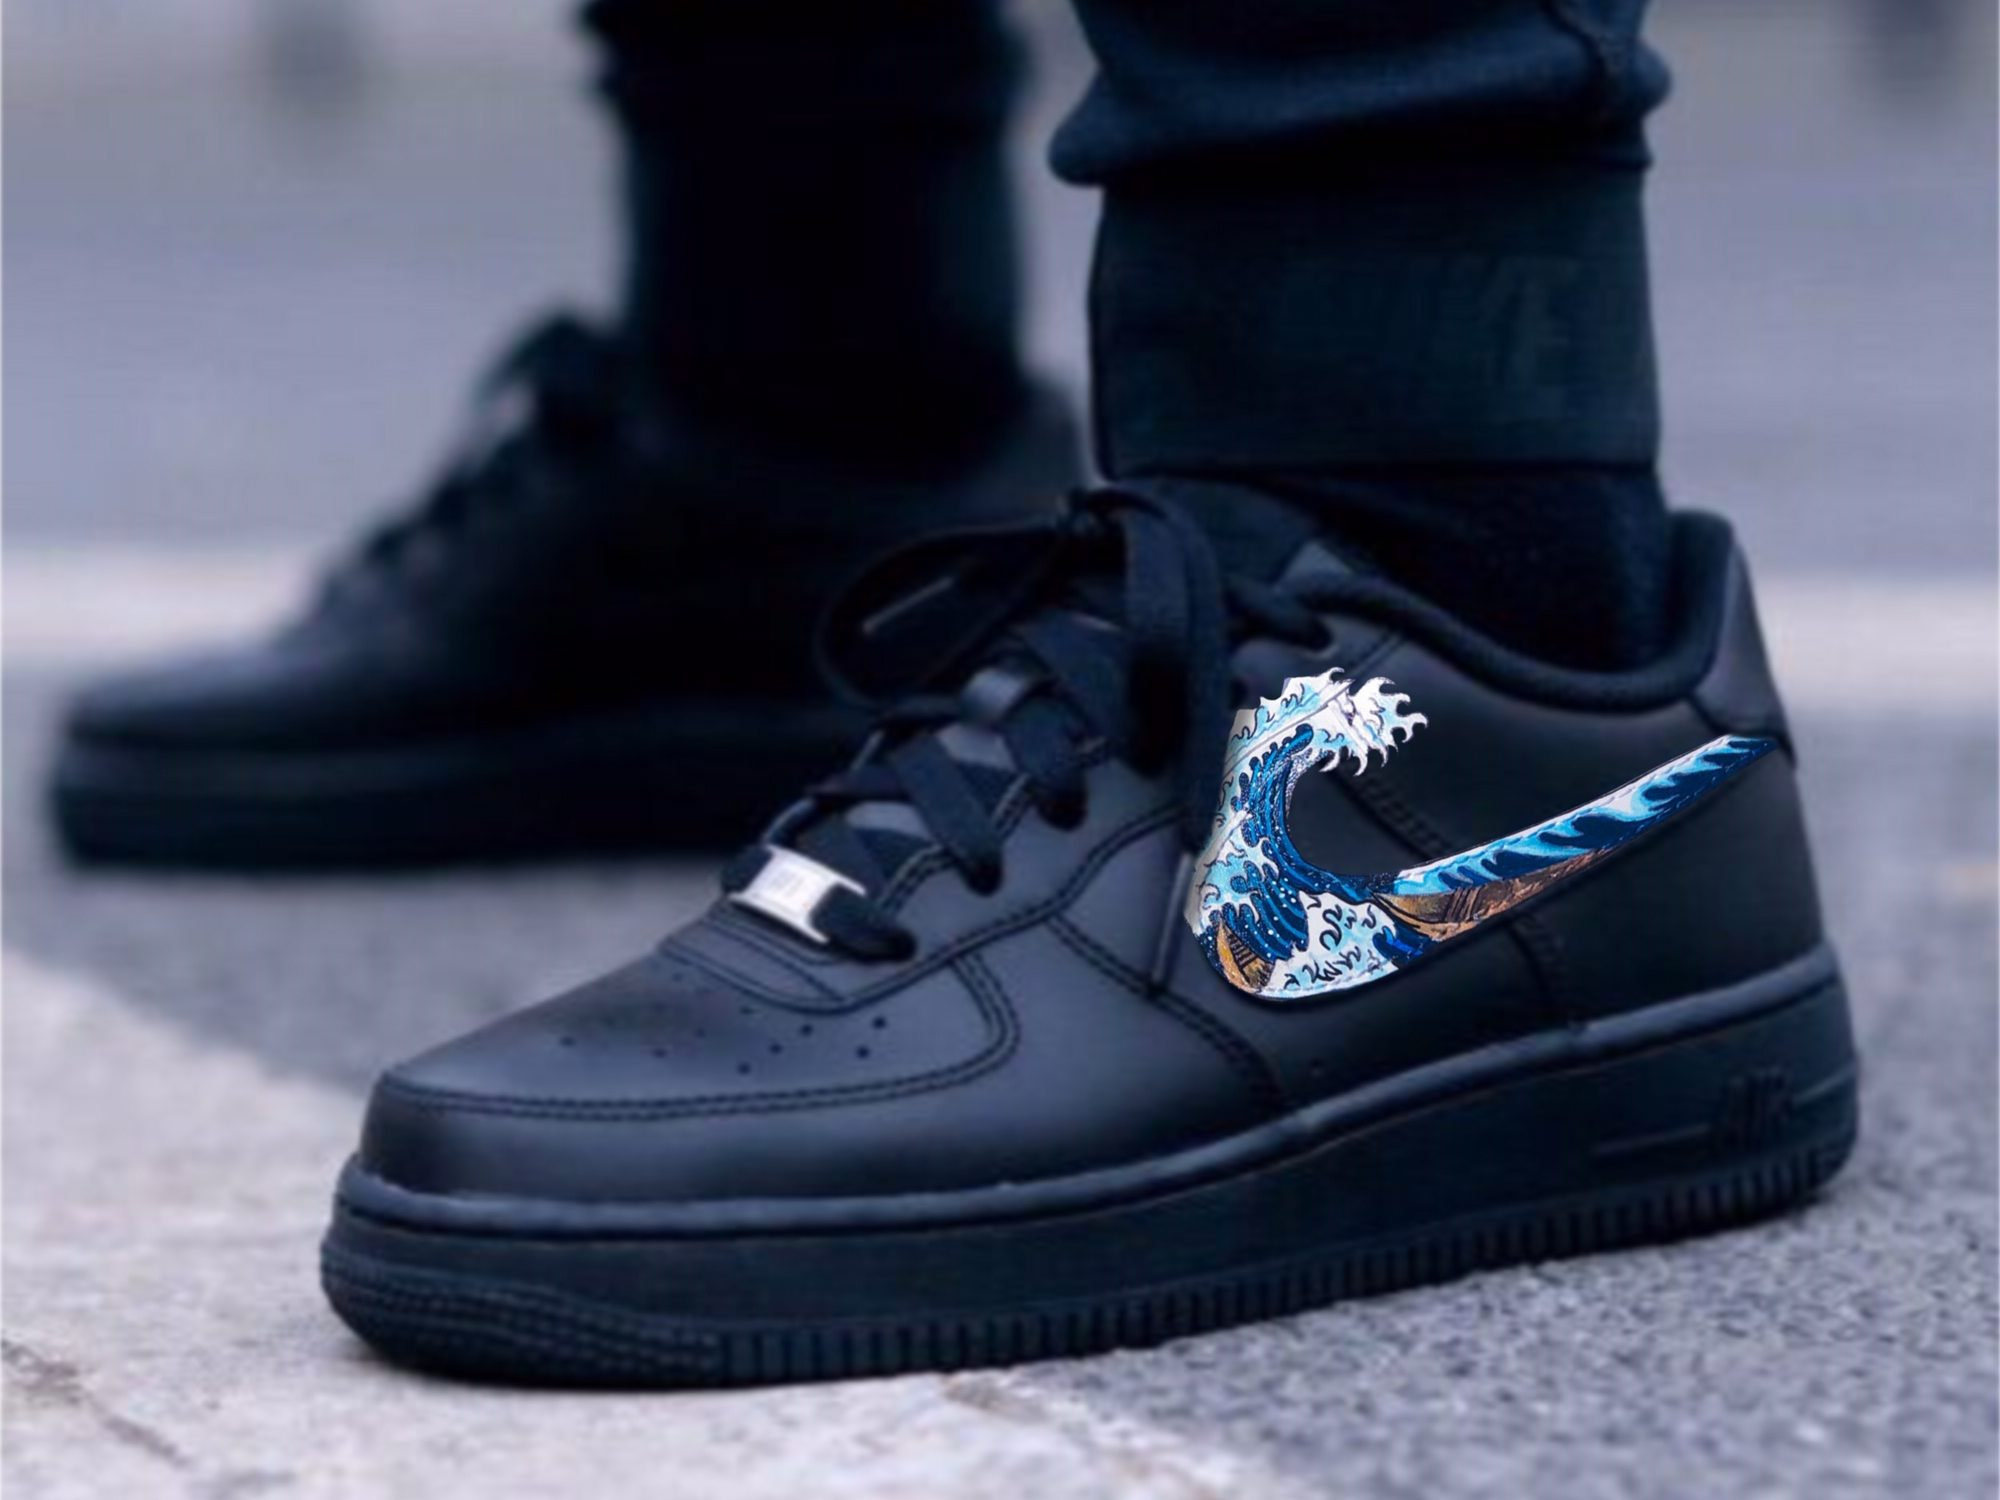 Nike's Air Force 1 Low Puerto Rico Shoes Illustrated a Lack